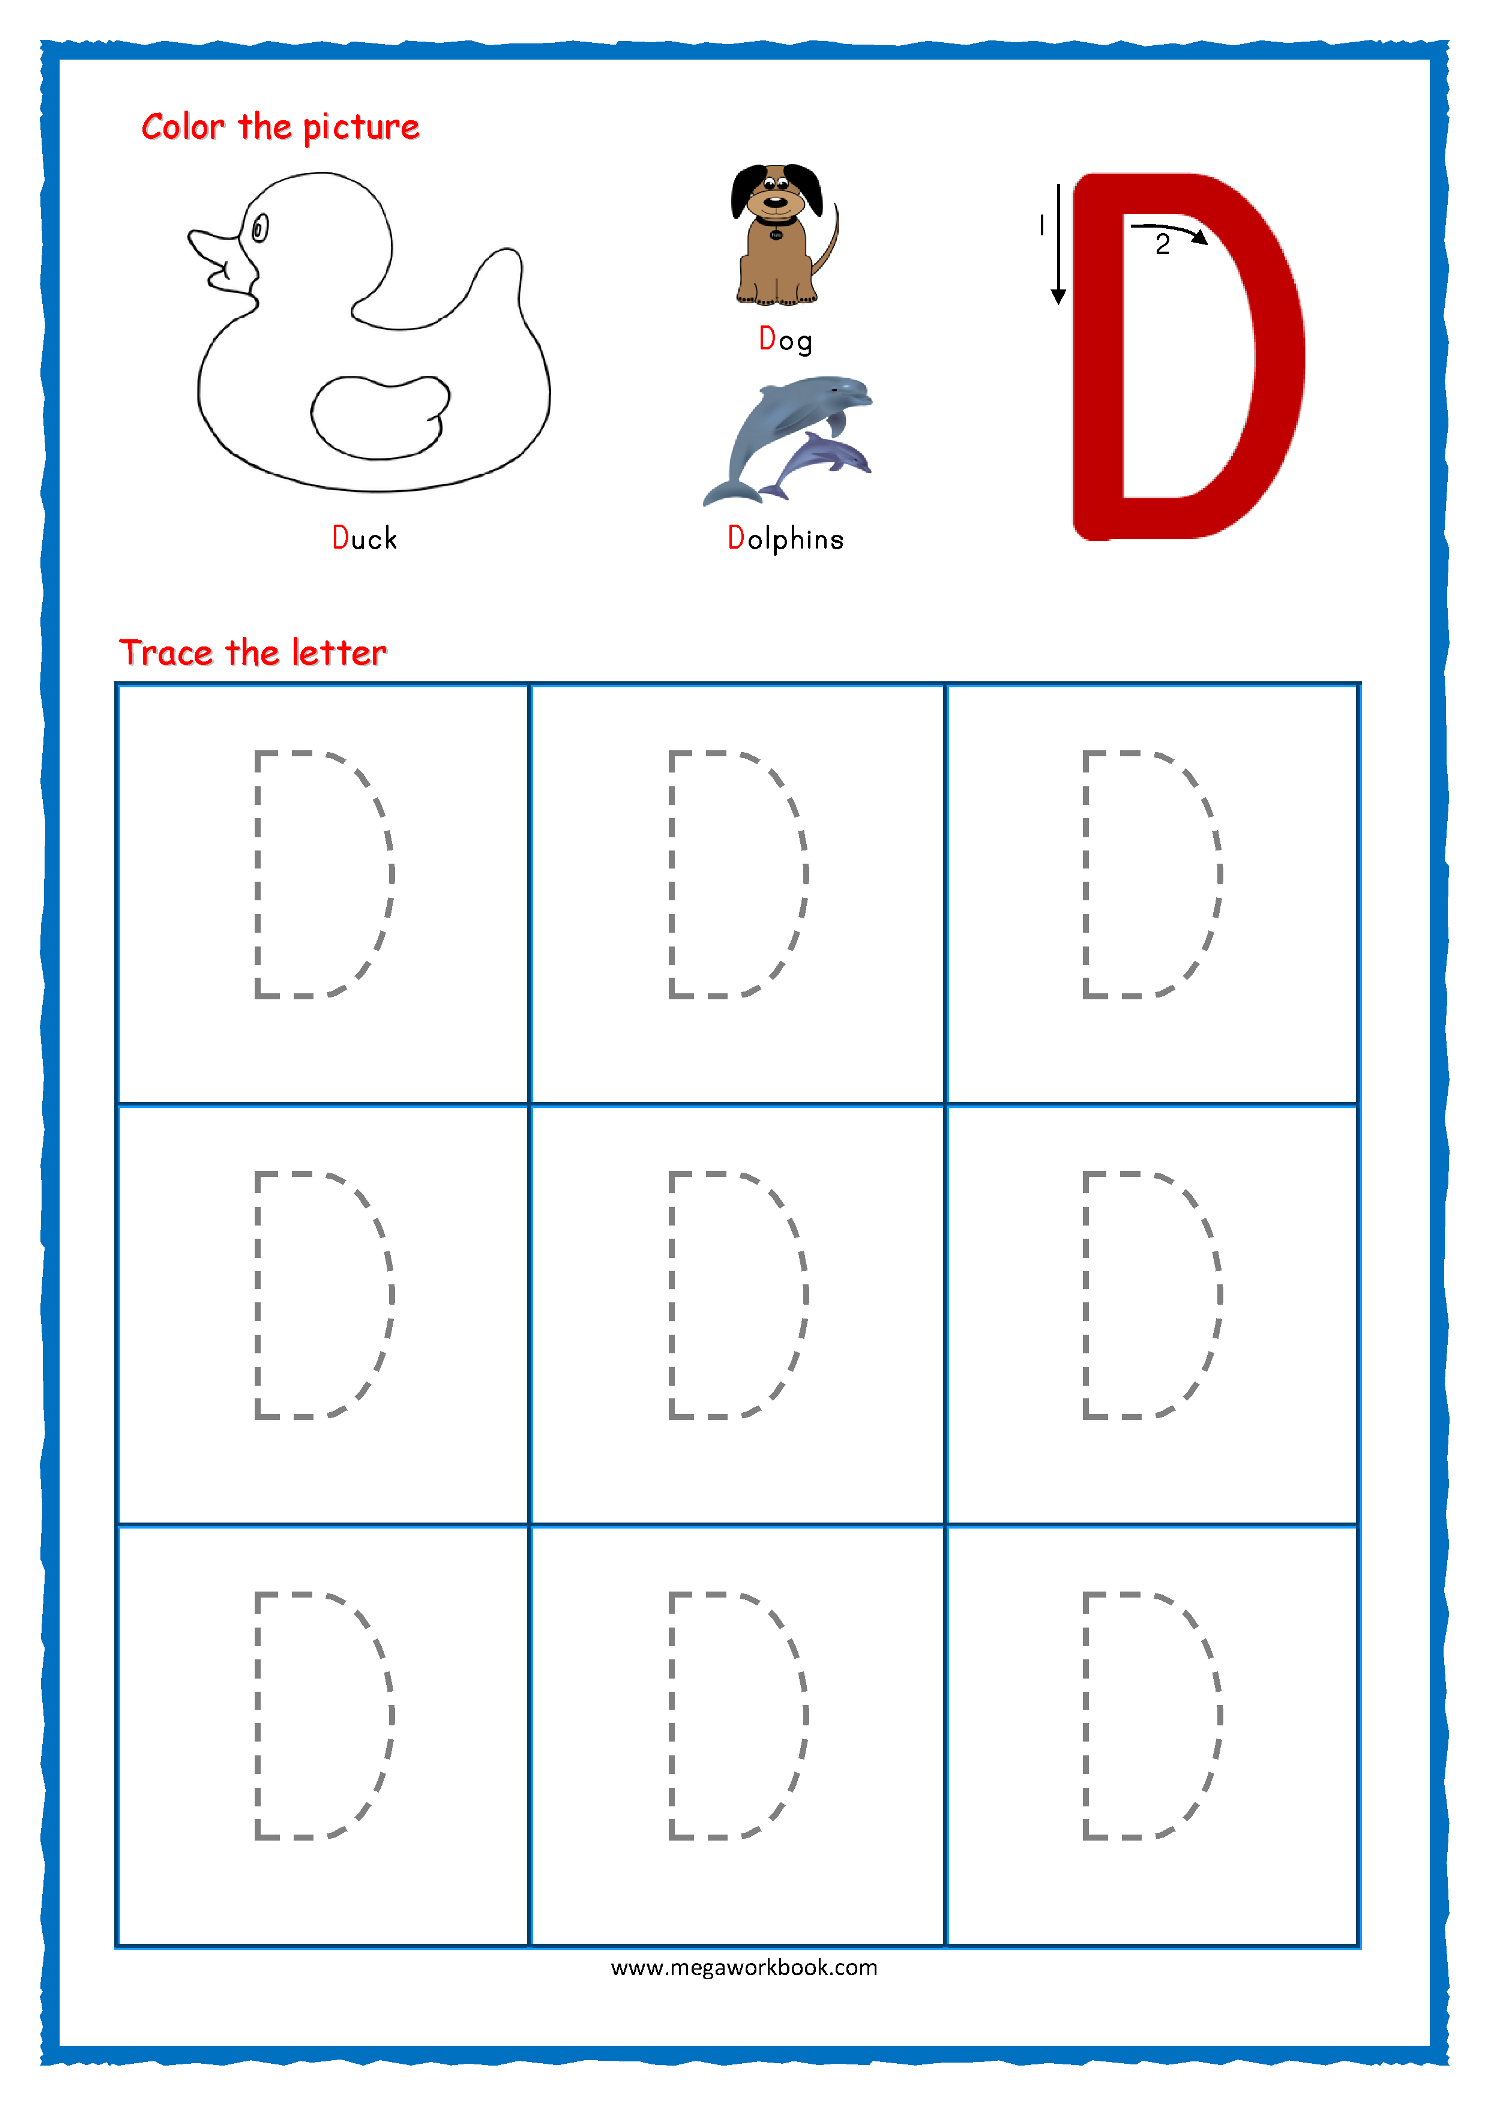 Tracing Letters - Alphabet Tracing - Capital Letters with Tracing Alphabet Letters Online